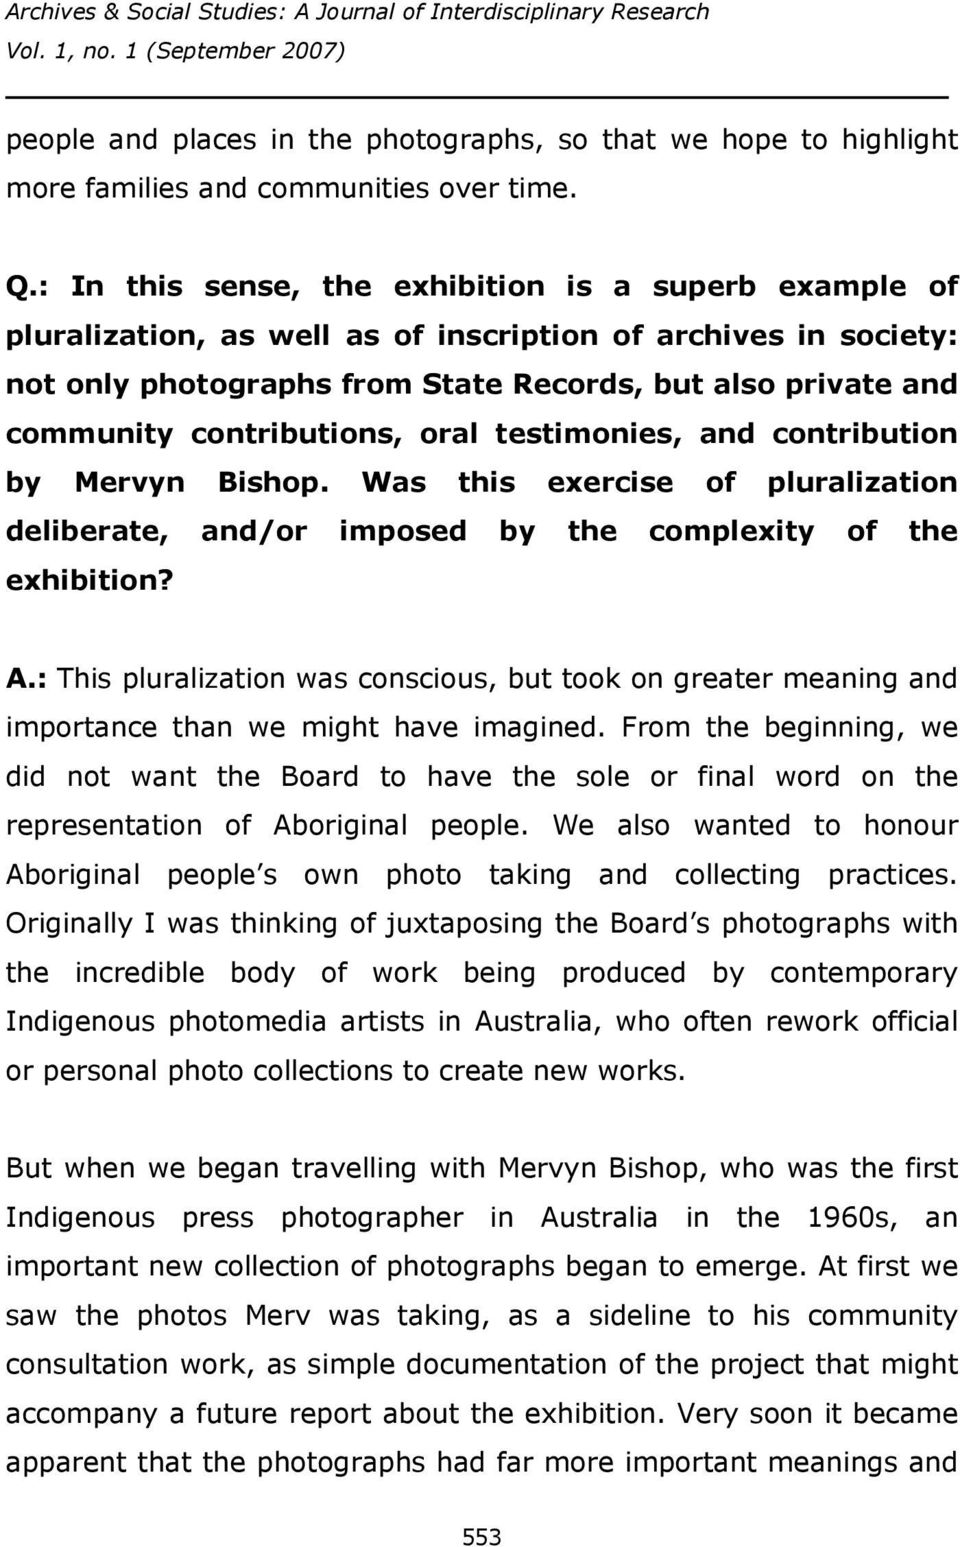 contributions, oral testimonies, and contribution by Mervyn Bishop. Was this exercise of pluralization deliberate, and/or imposed by the complexity of the exhibition? A.